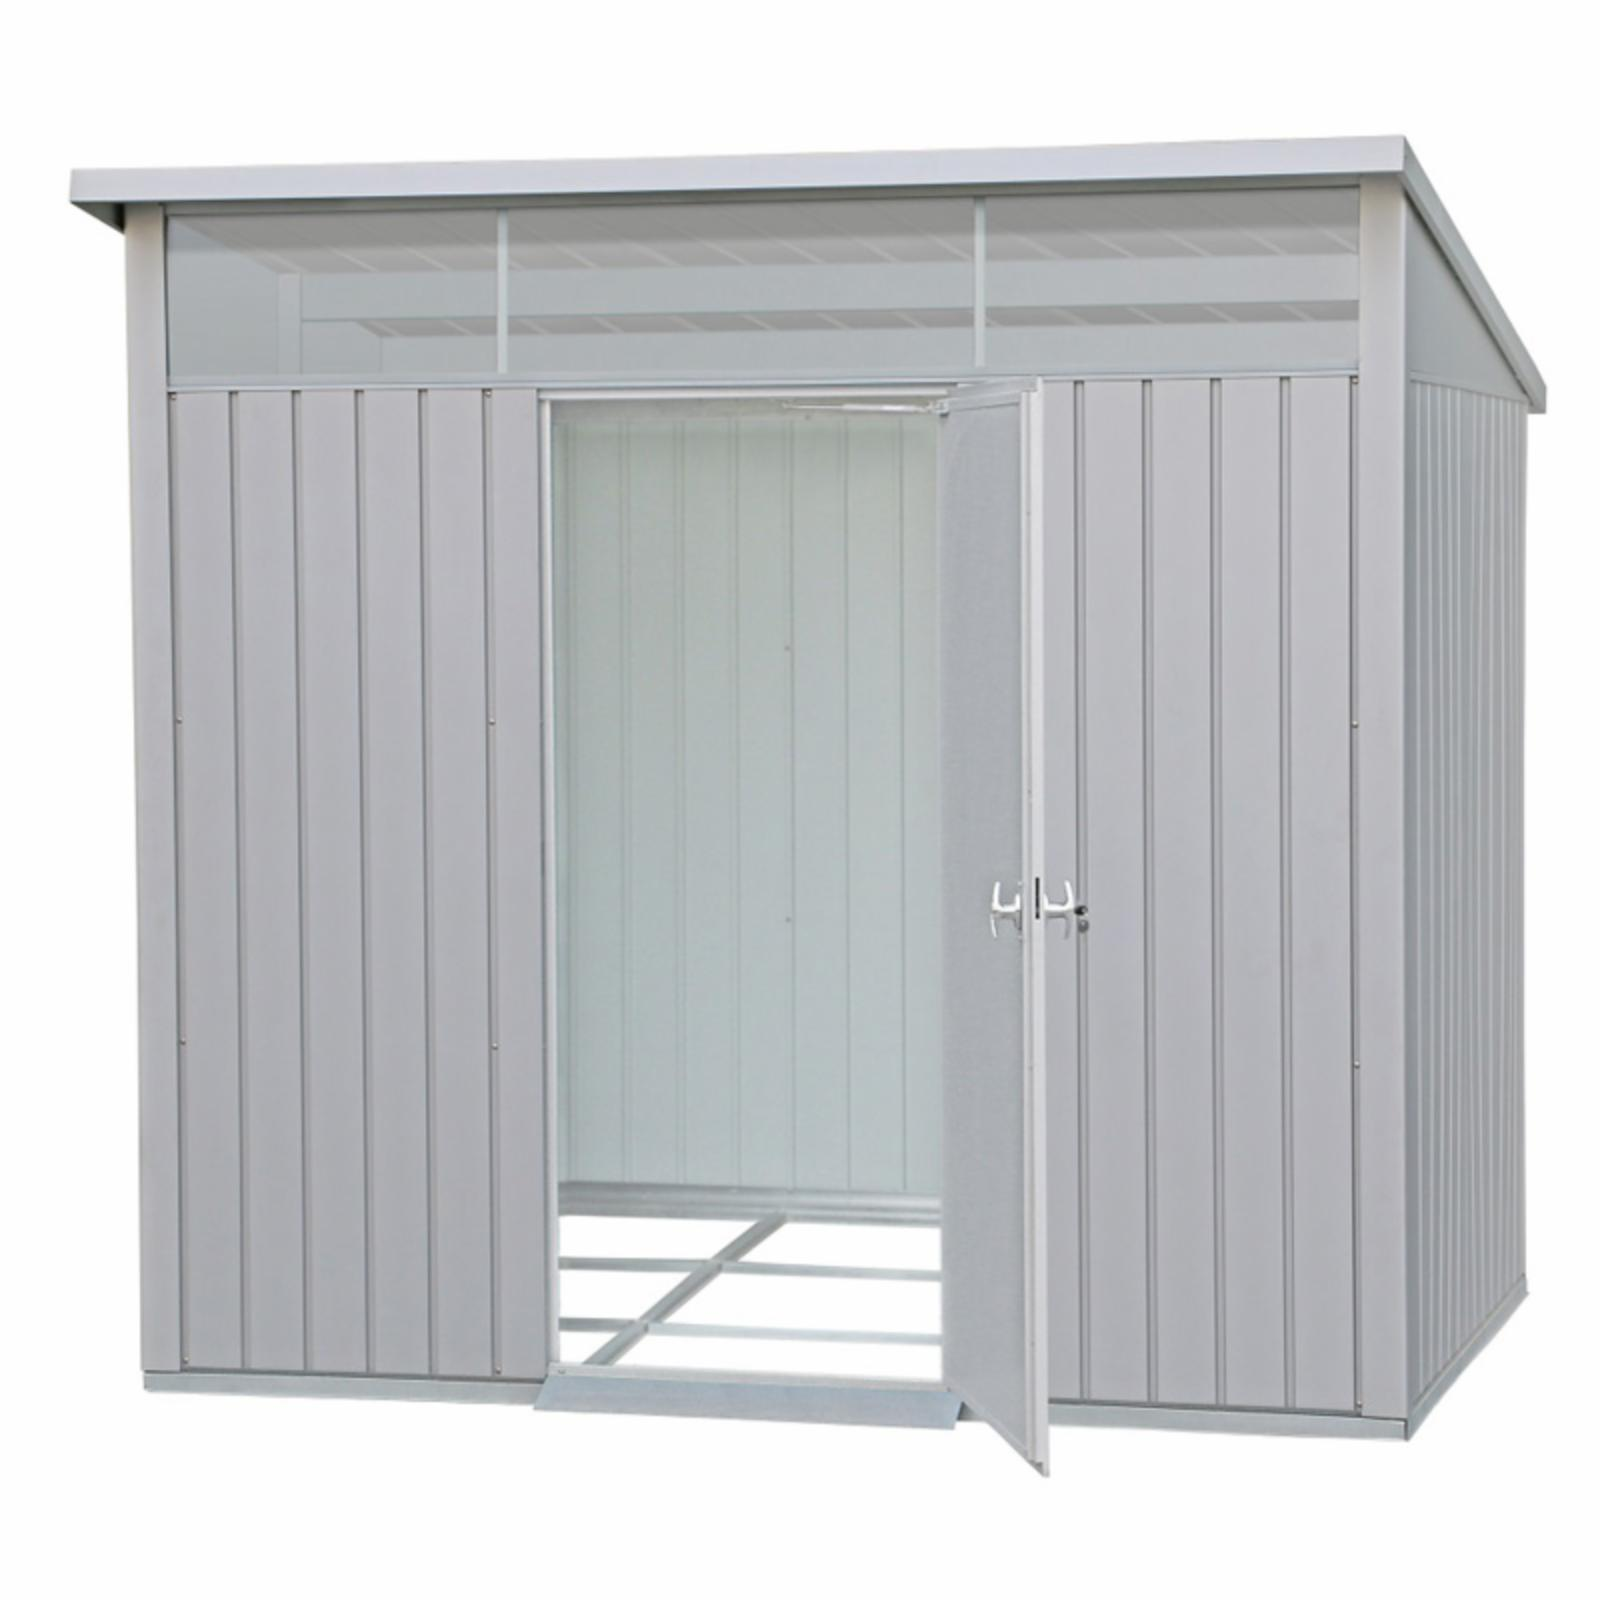 Duramax Building Products Palladium Heavy Duty Metal Storage Shed - 41372